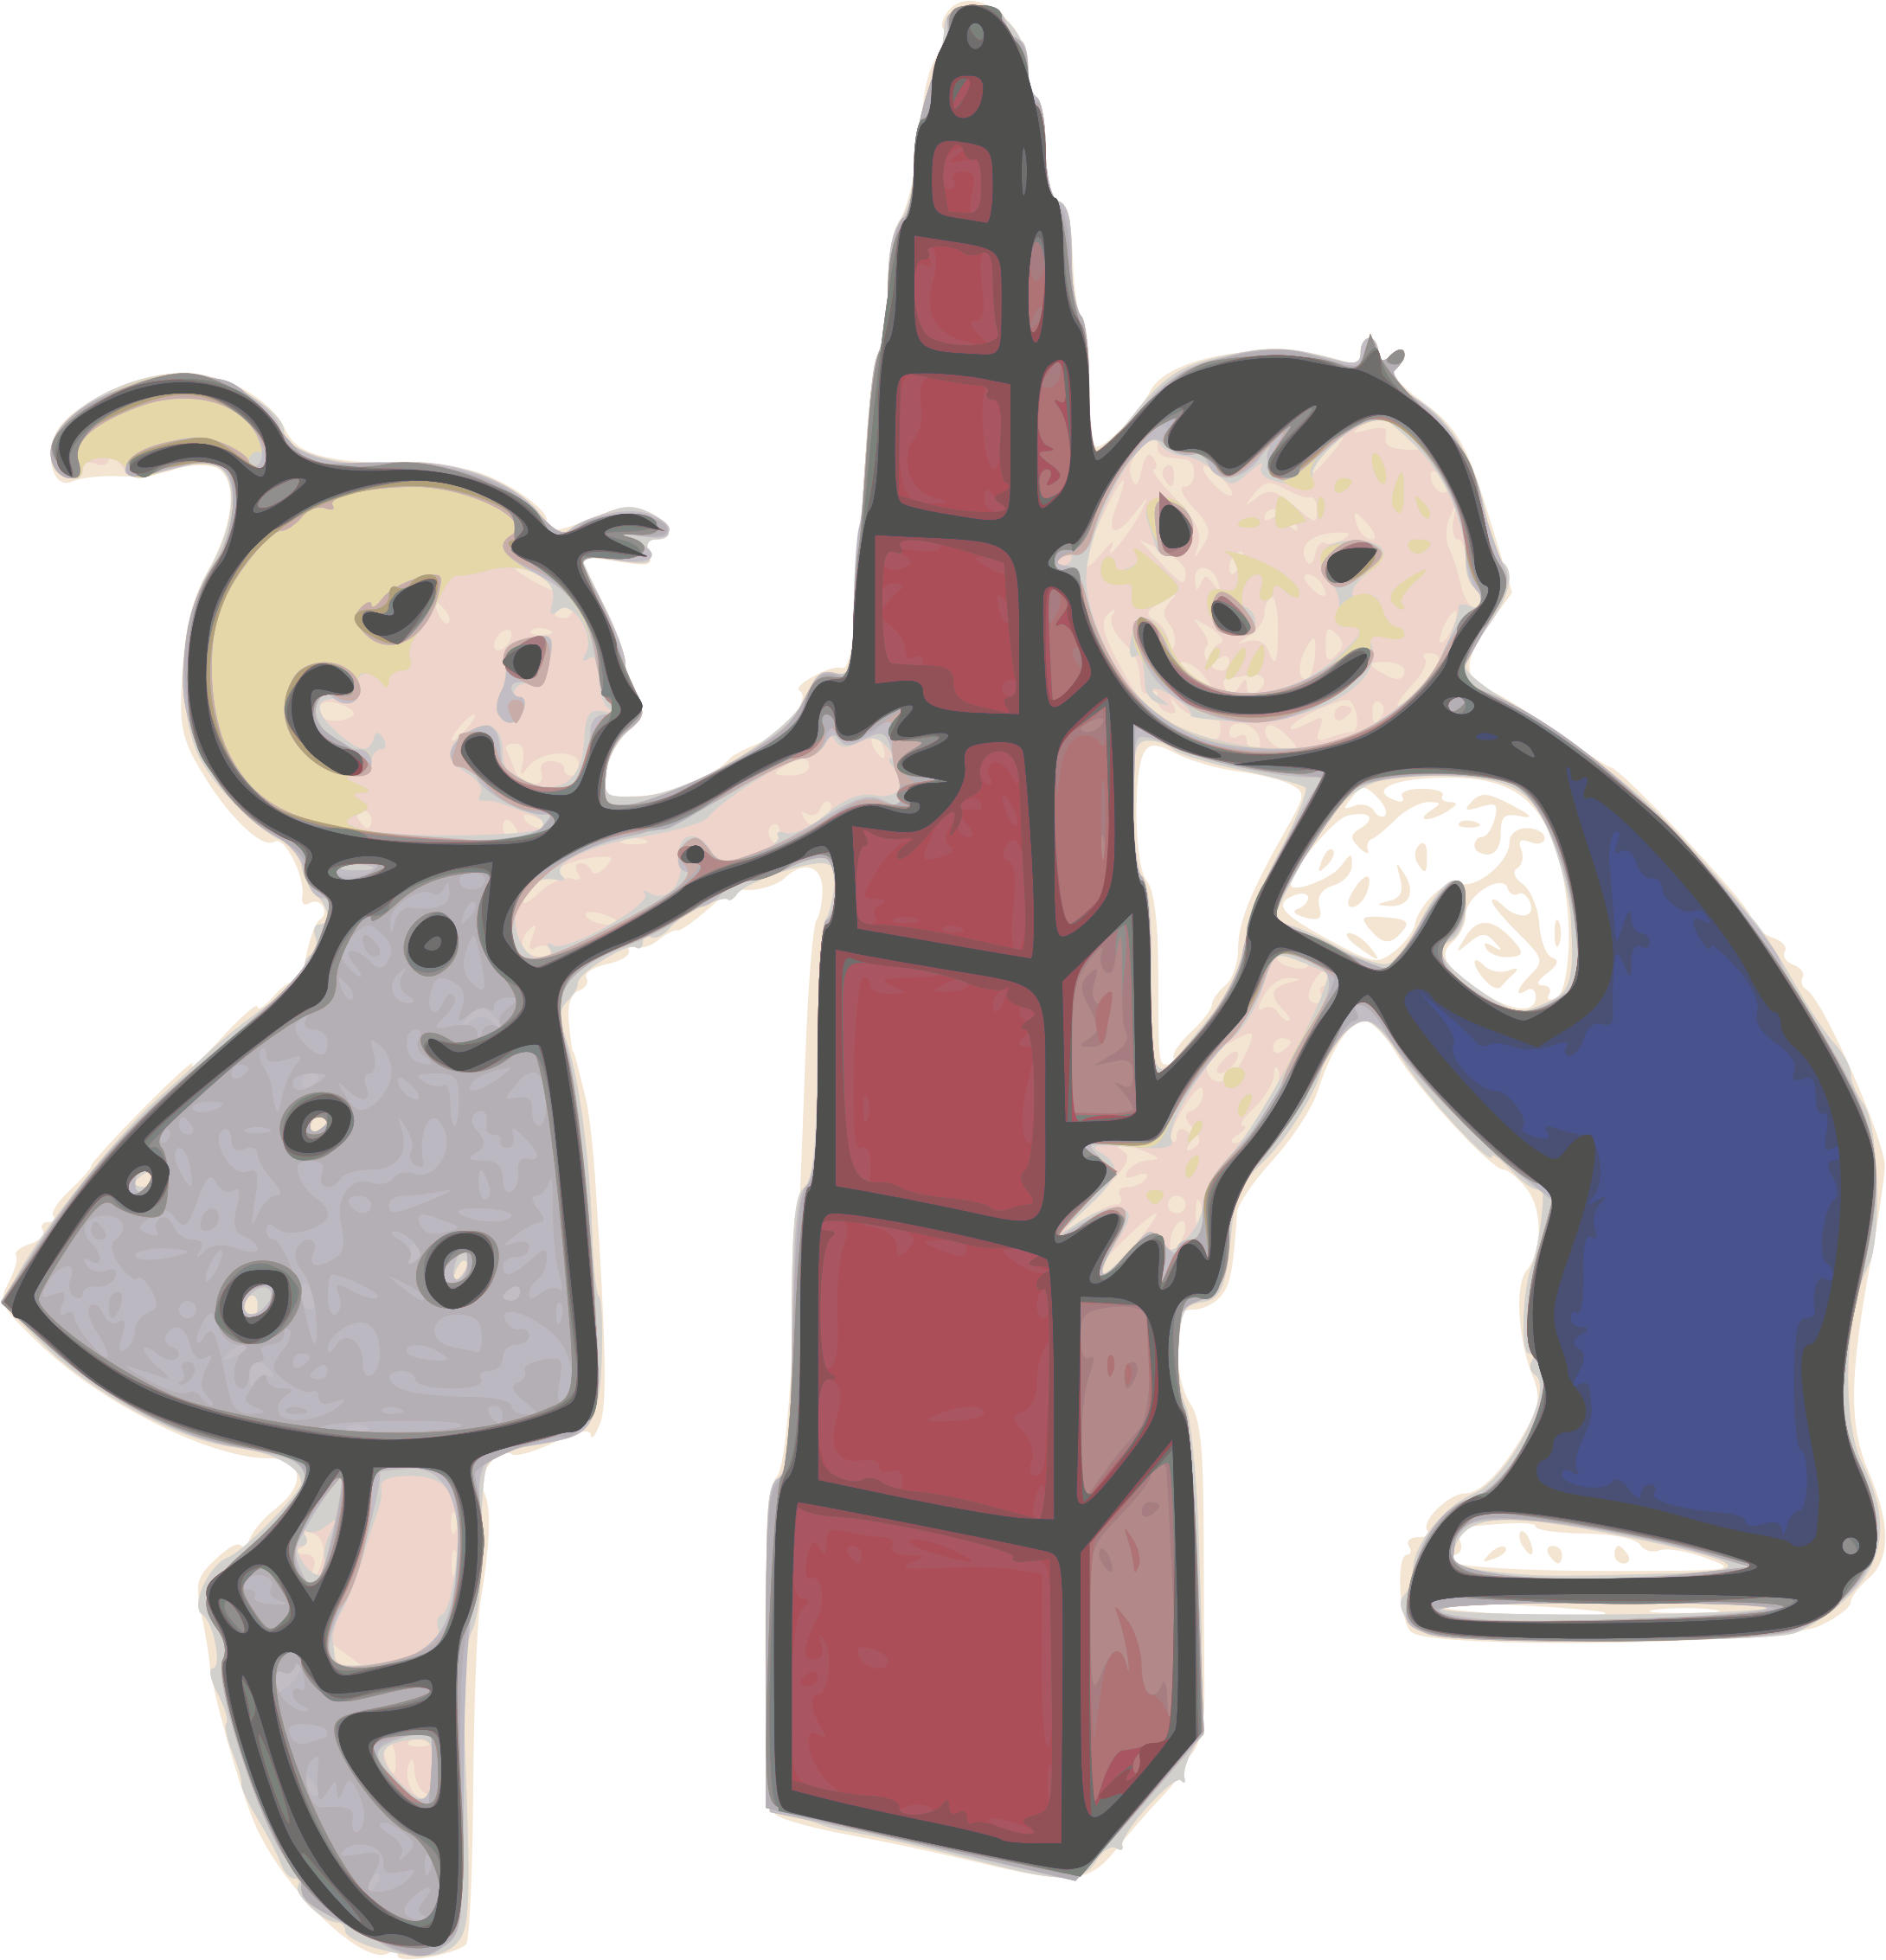 Kids play with giancarlo. Tower clipart basic